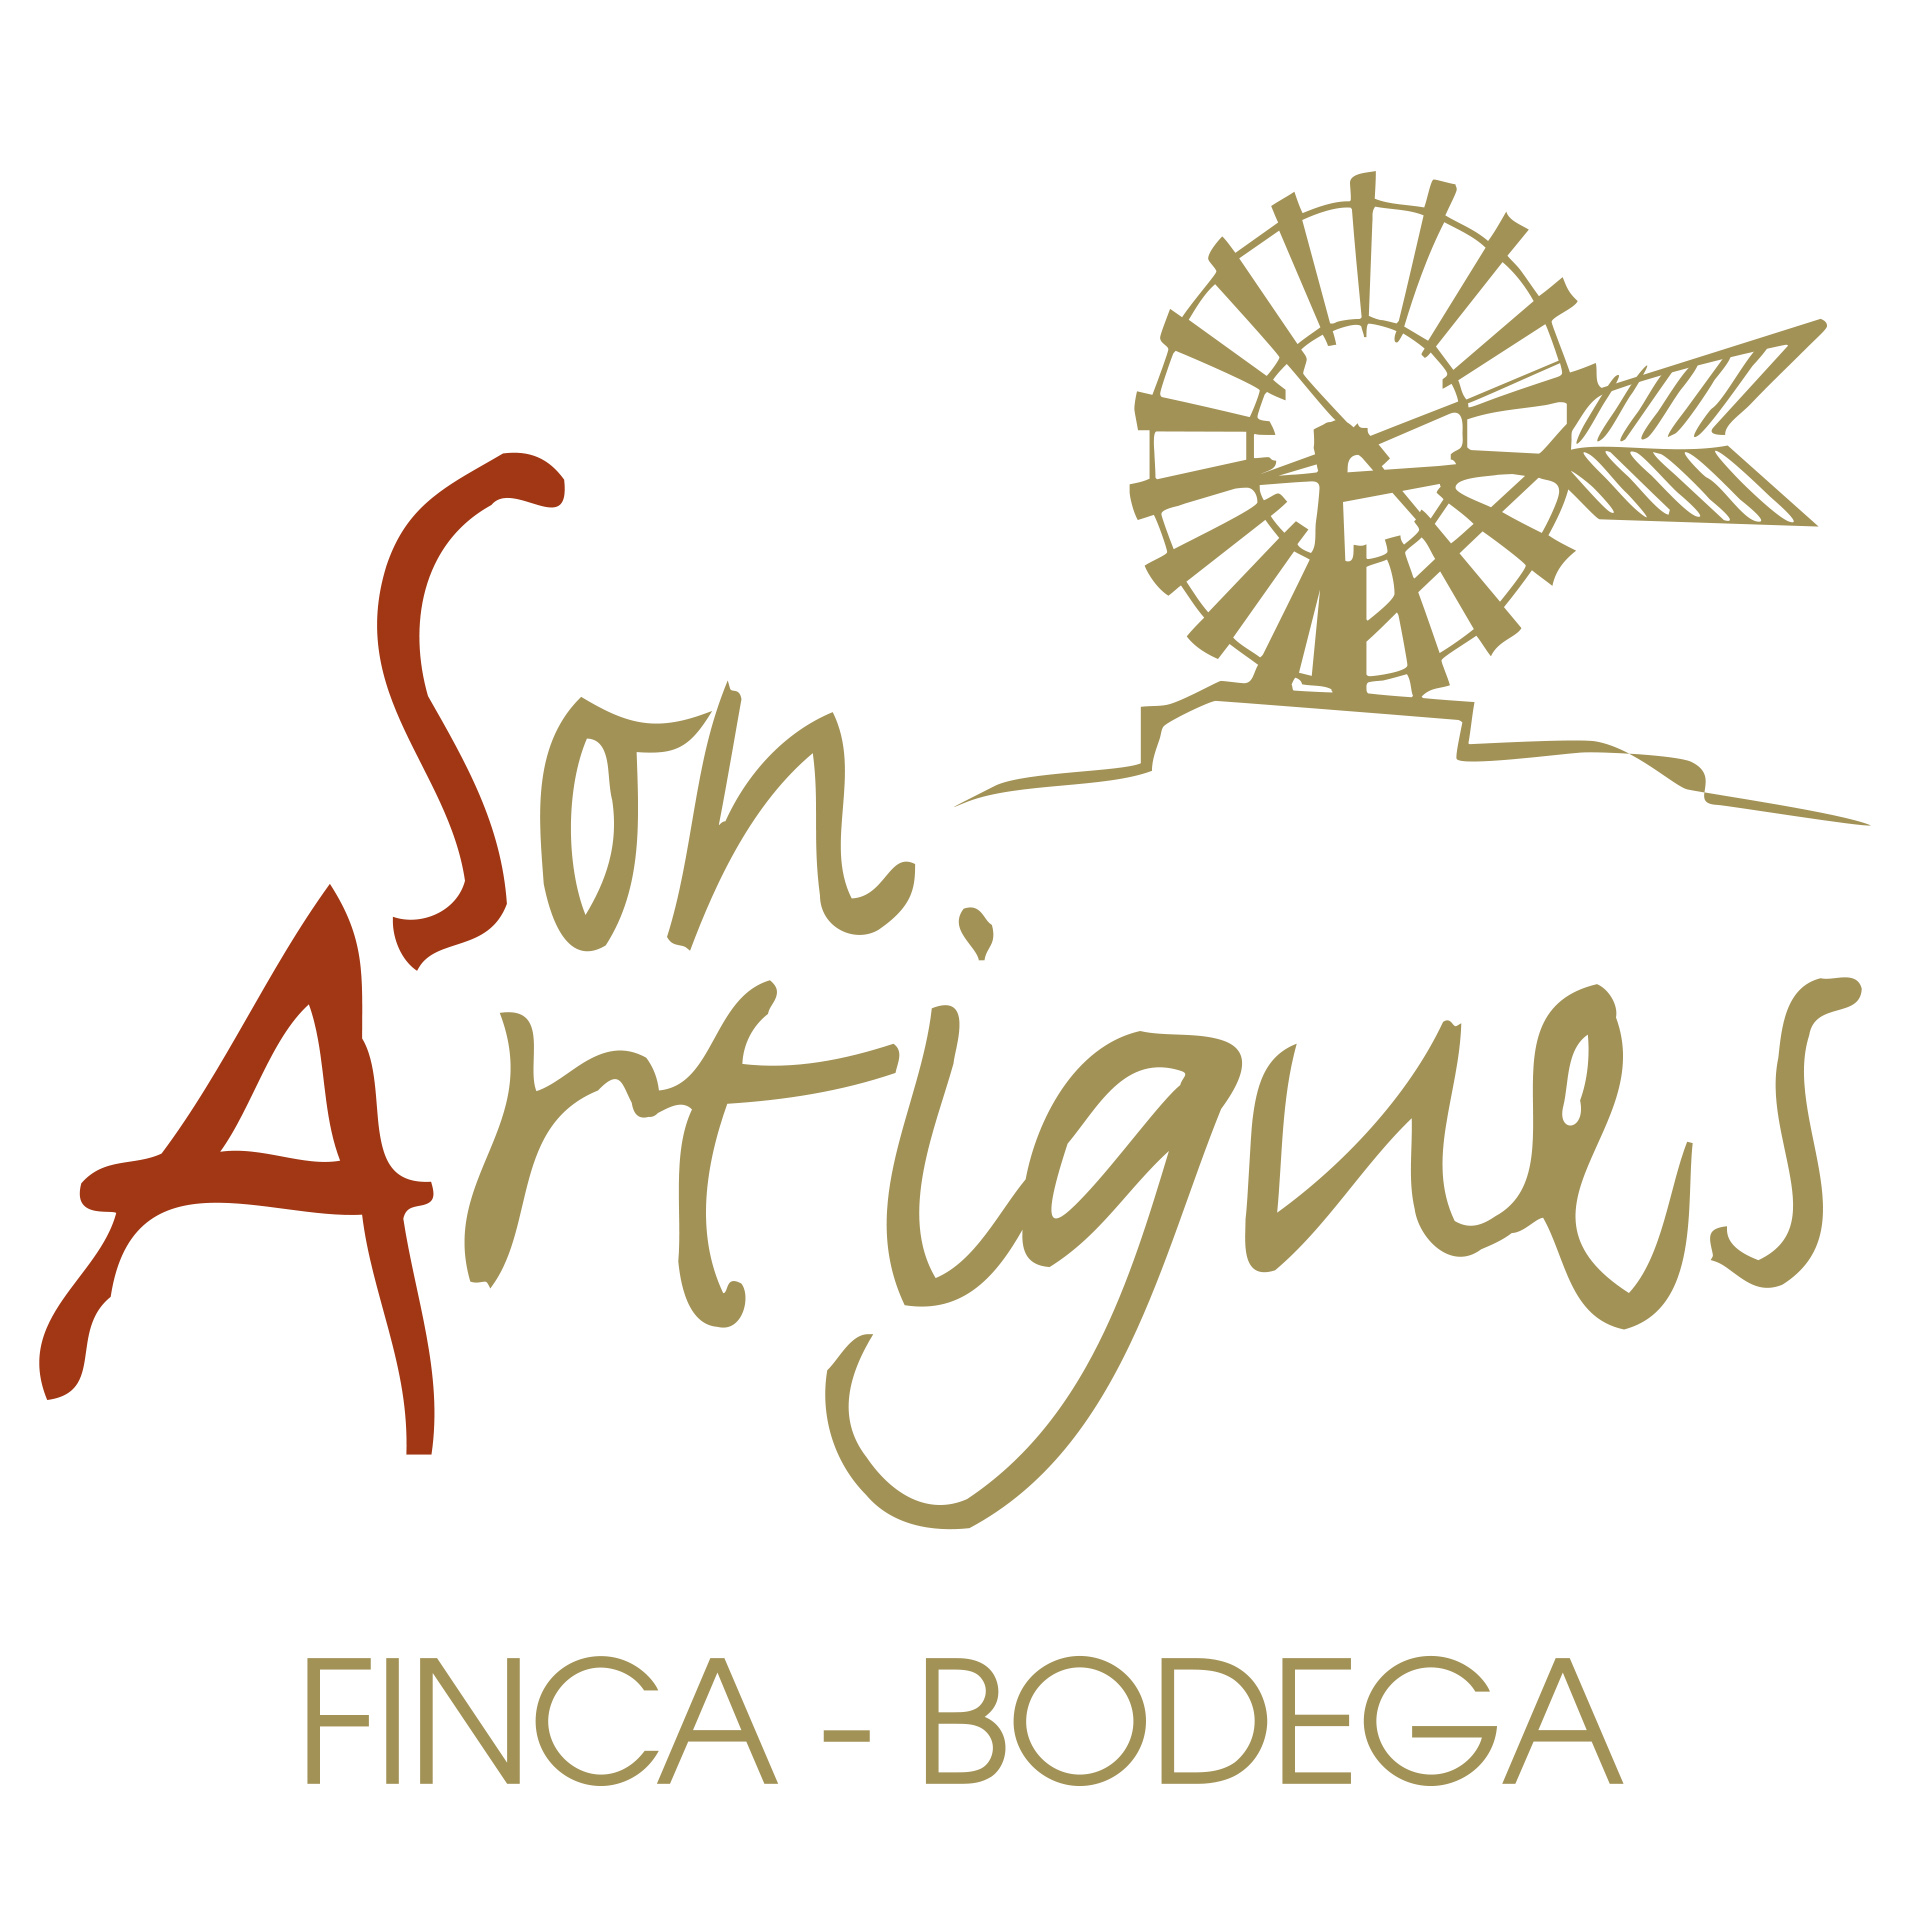 LOGO-OK-SON-ARTIGUES.jpg